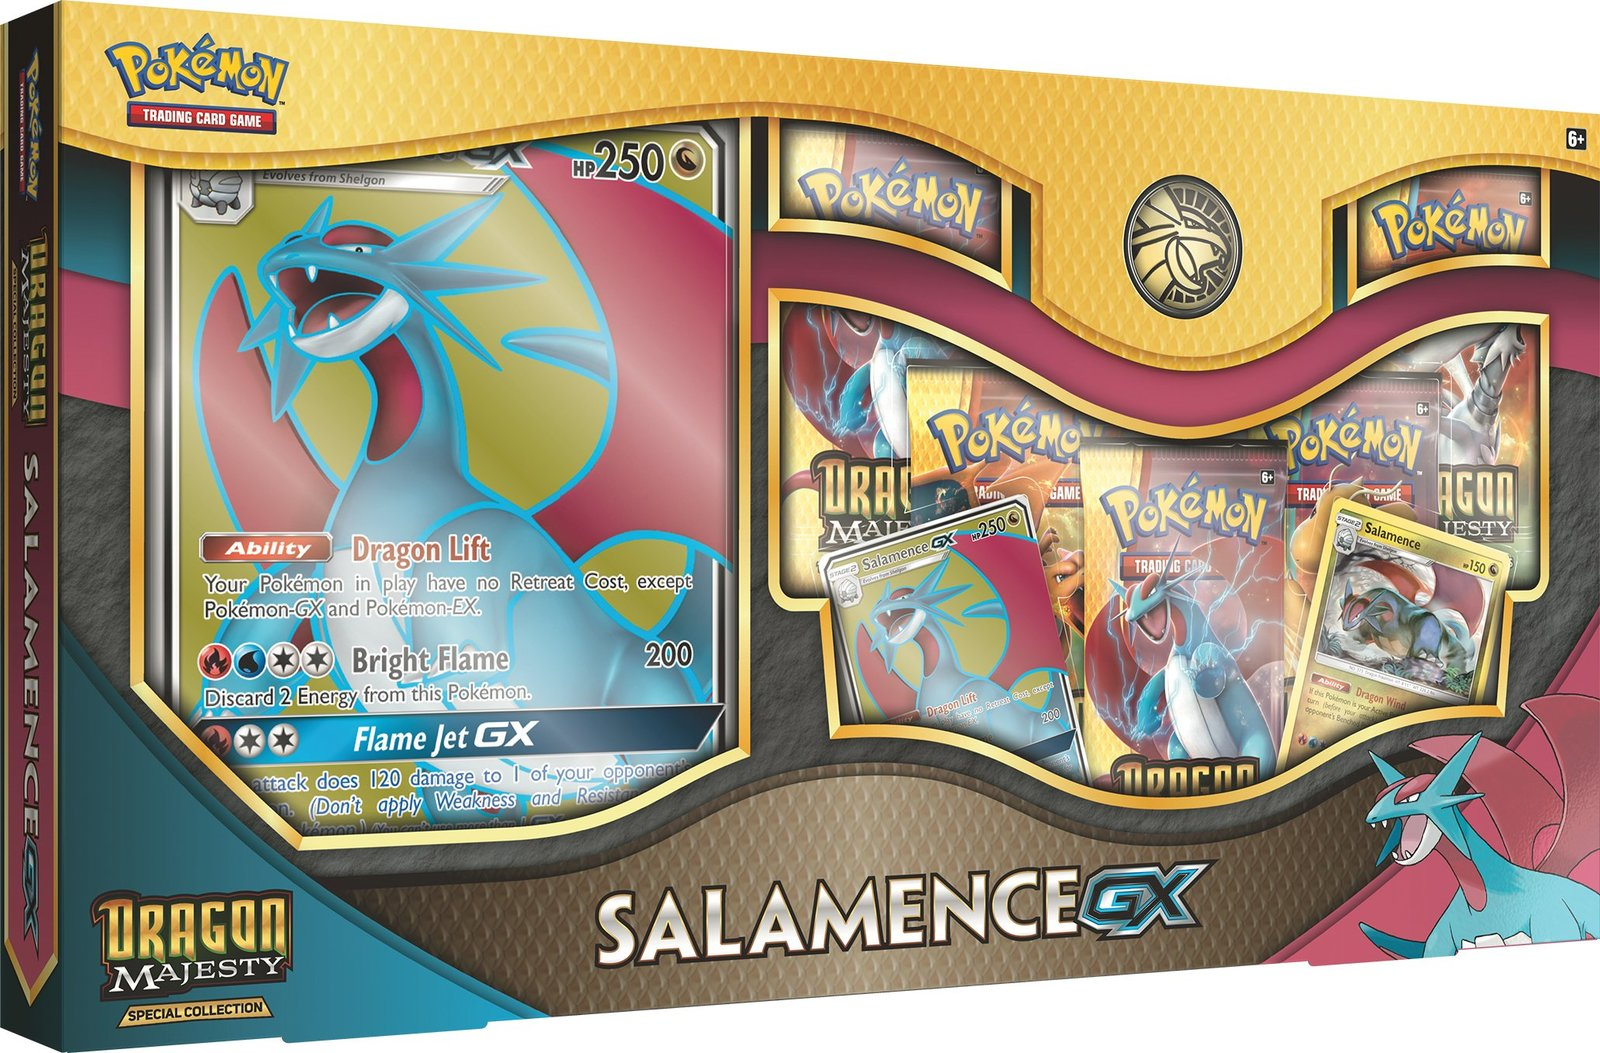 Pokemon TCG: Dragon Majesty Special Collection - Salamence-GX image